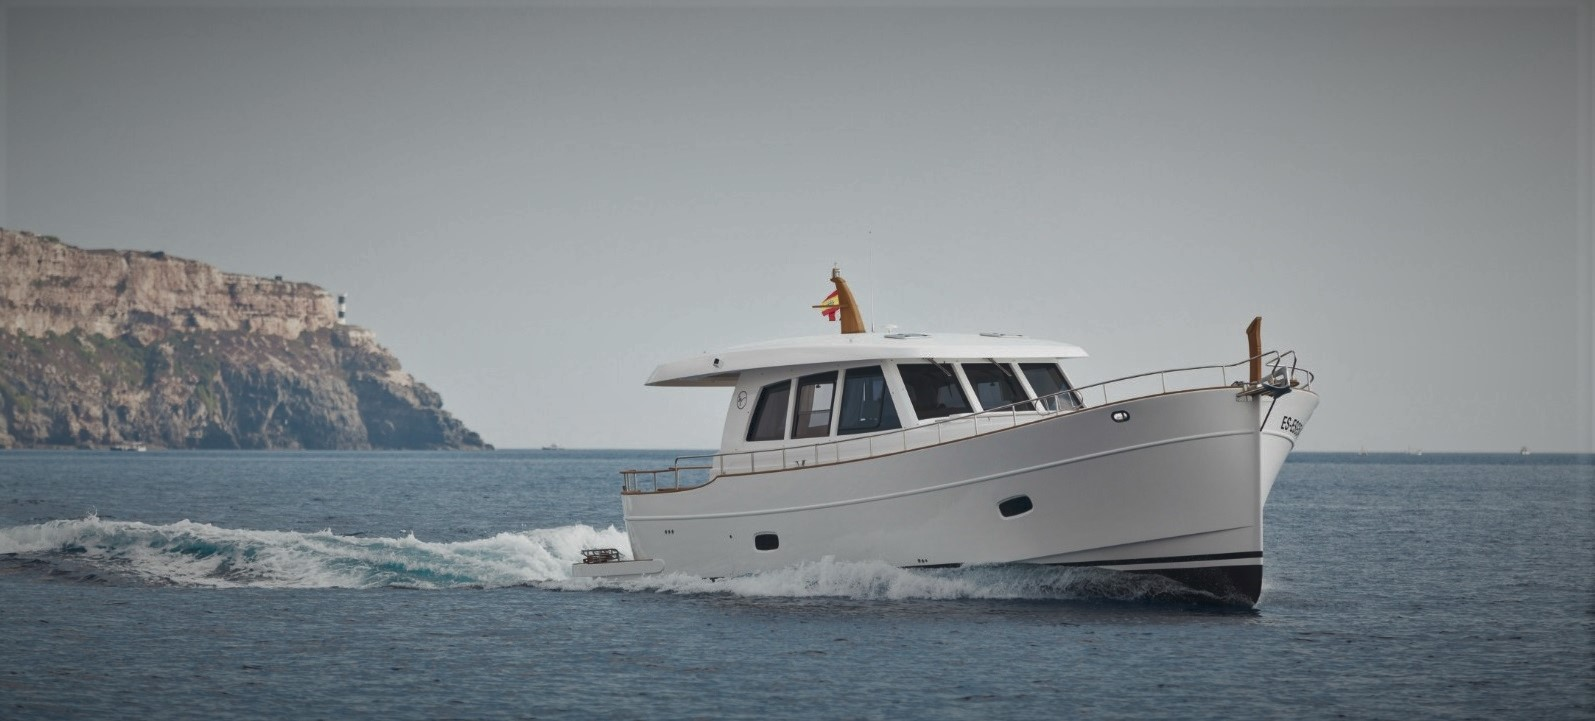 Minorca Islander 54 yacht for sale - Underway